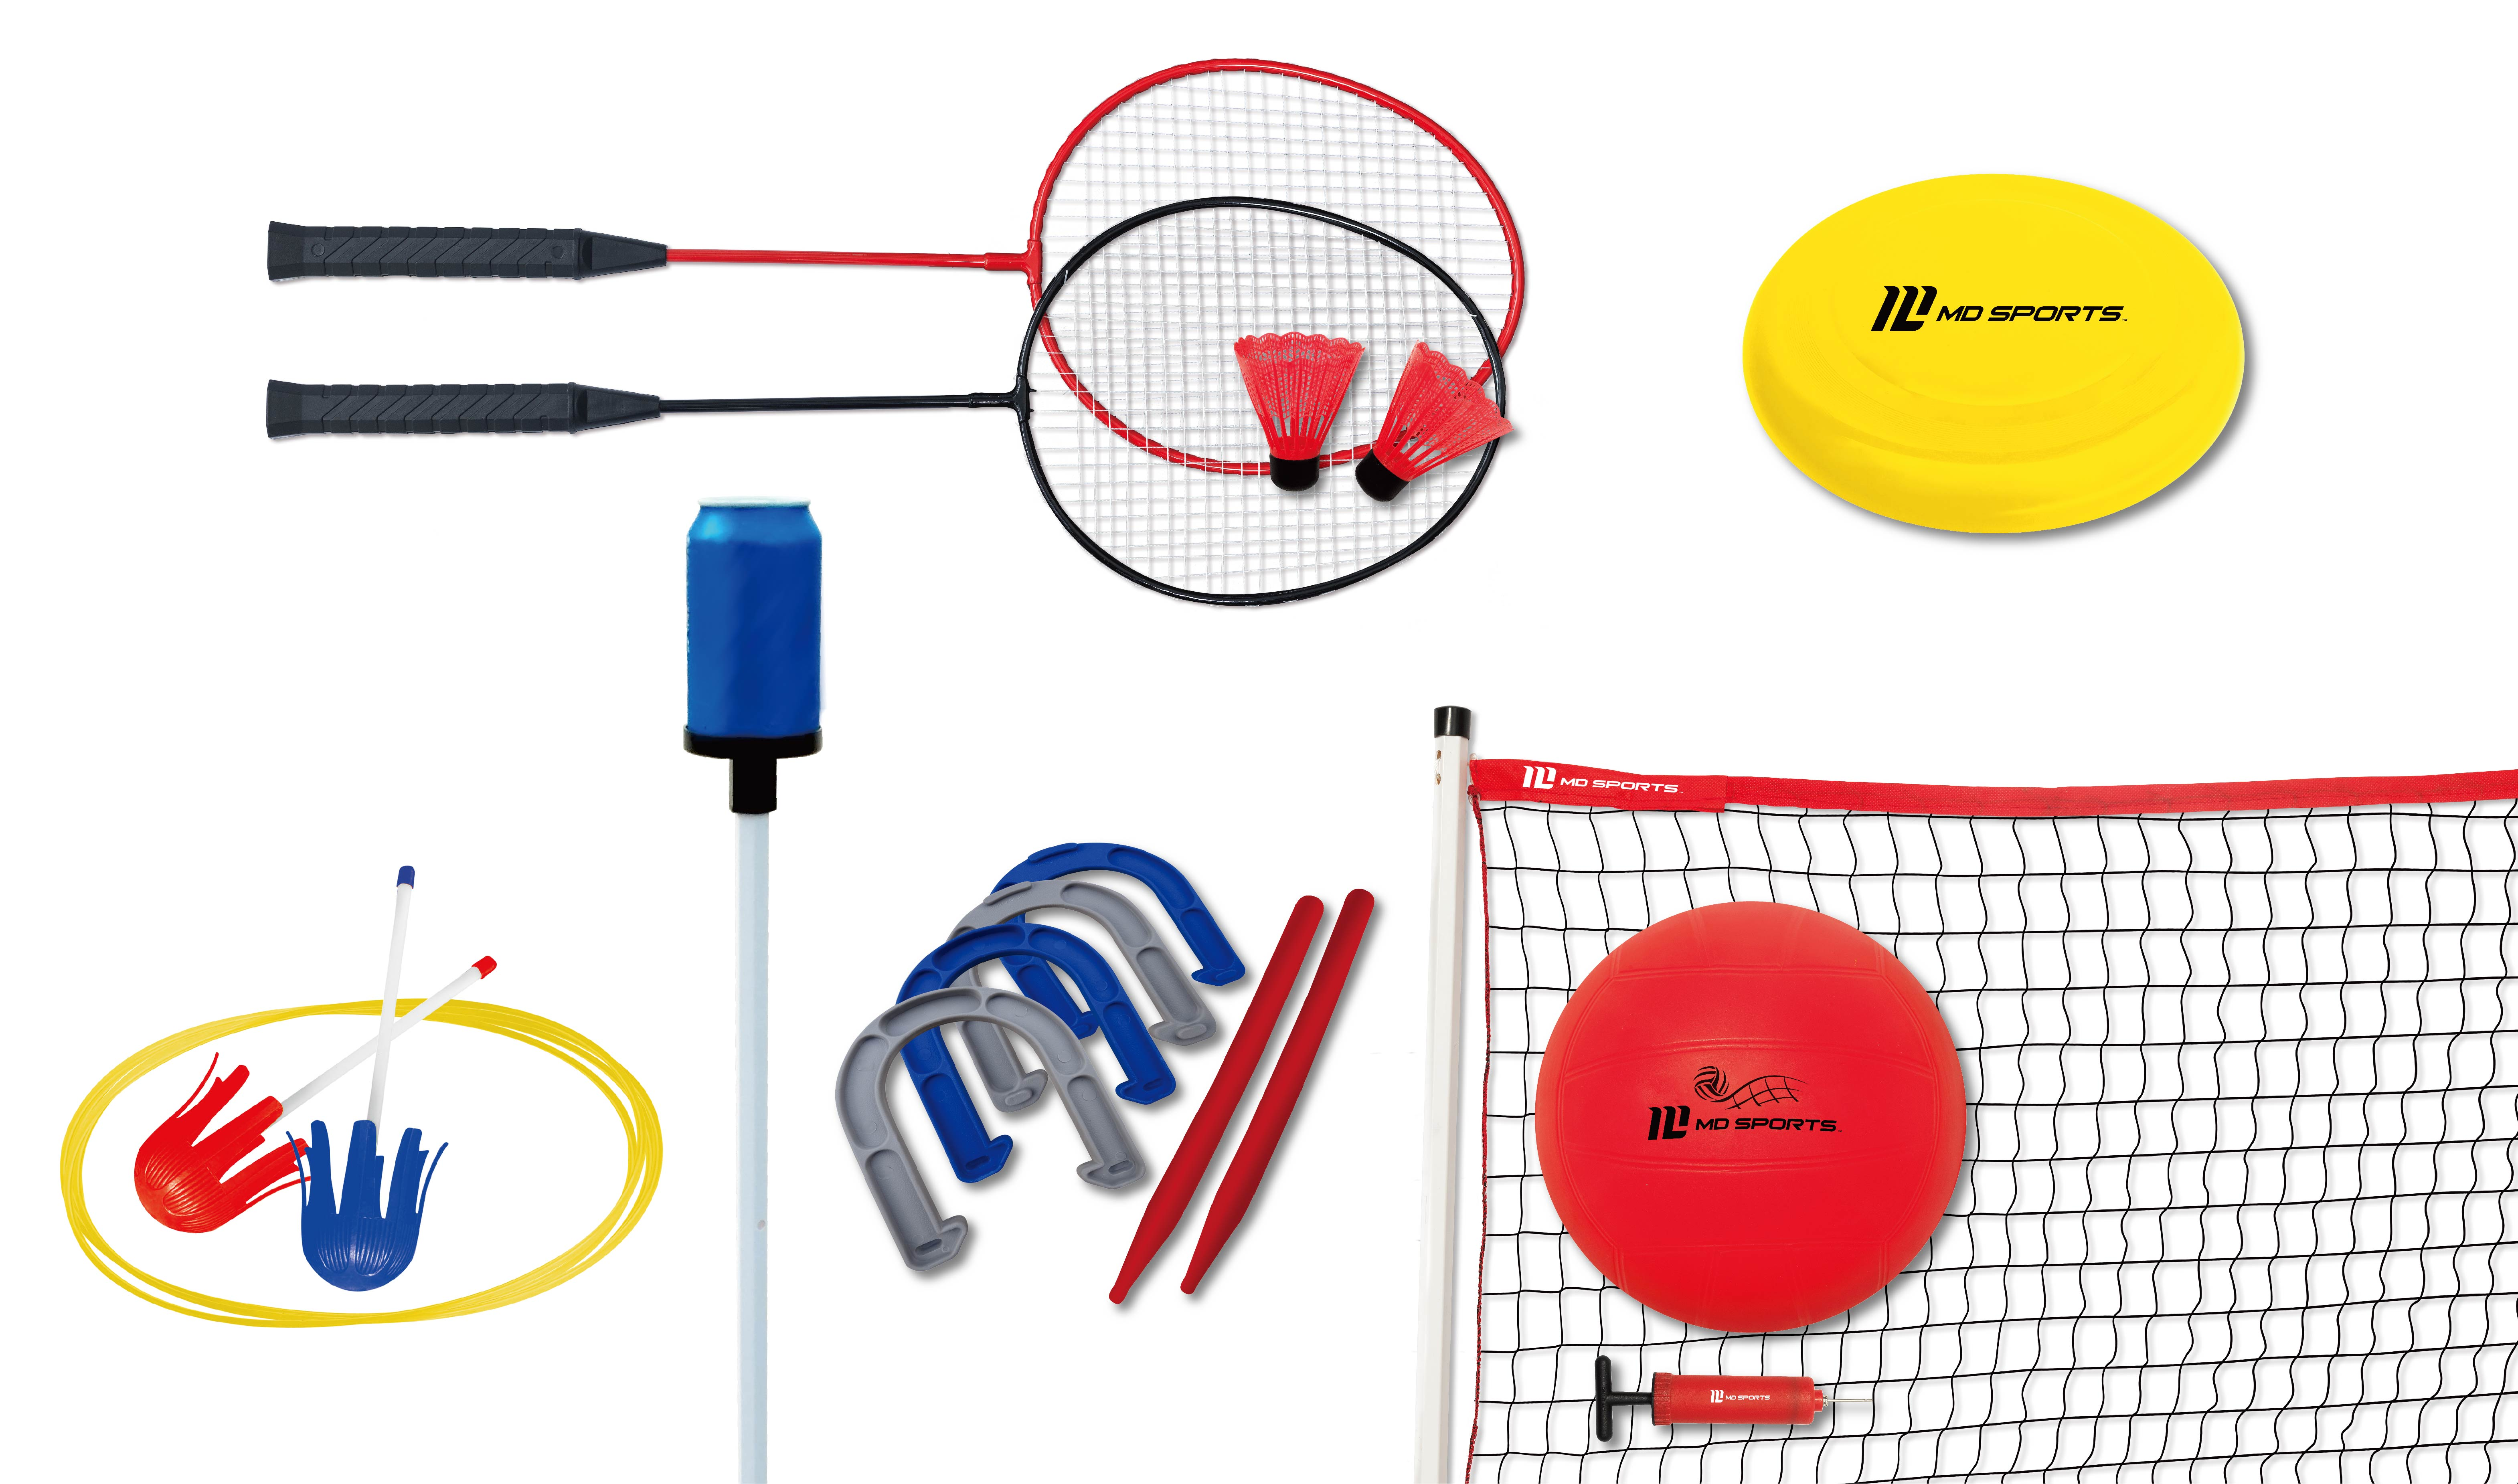 MD Sports 6 In 1 Backyard Game Combo Set